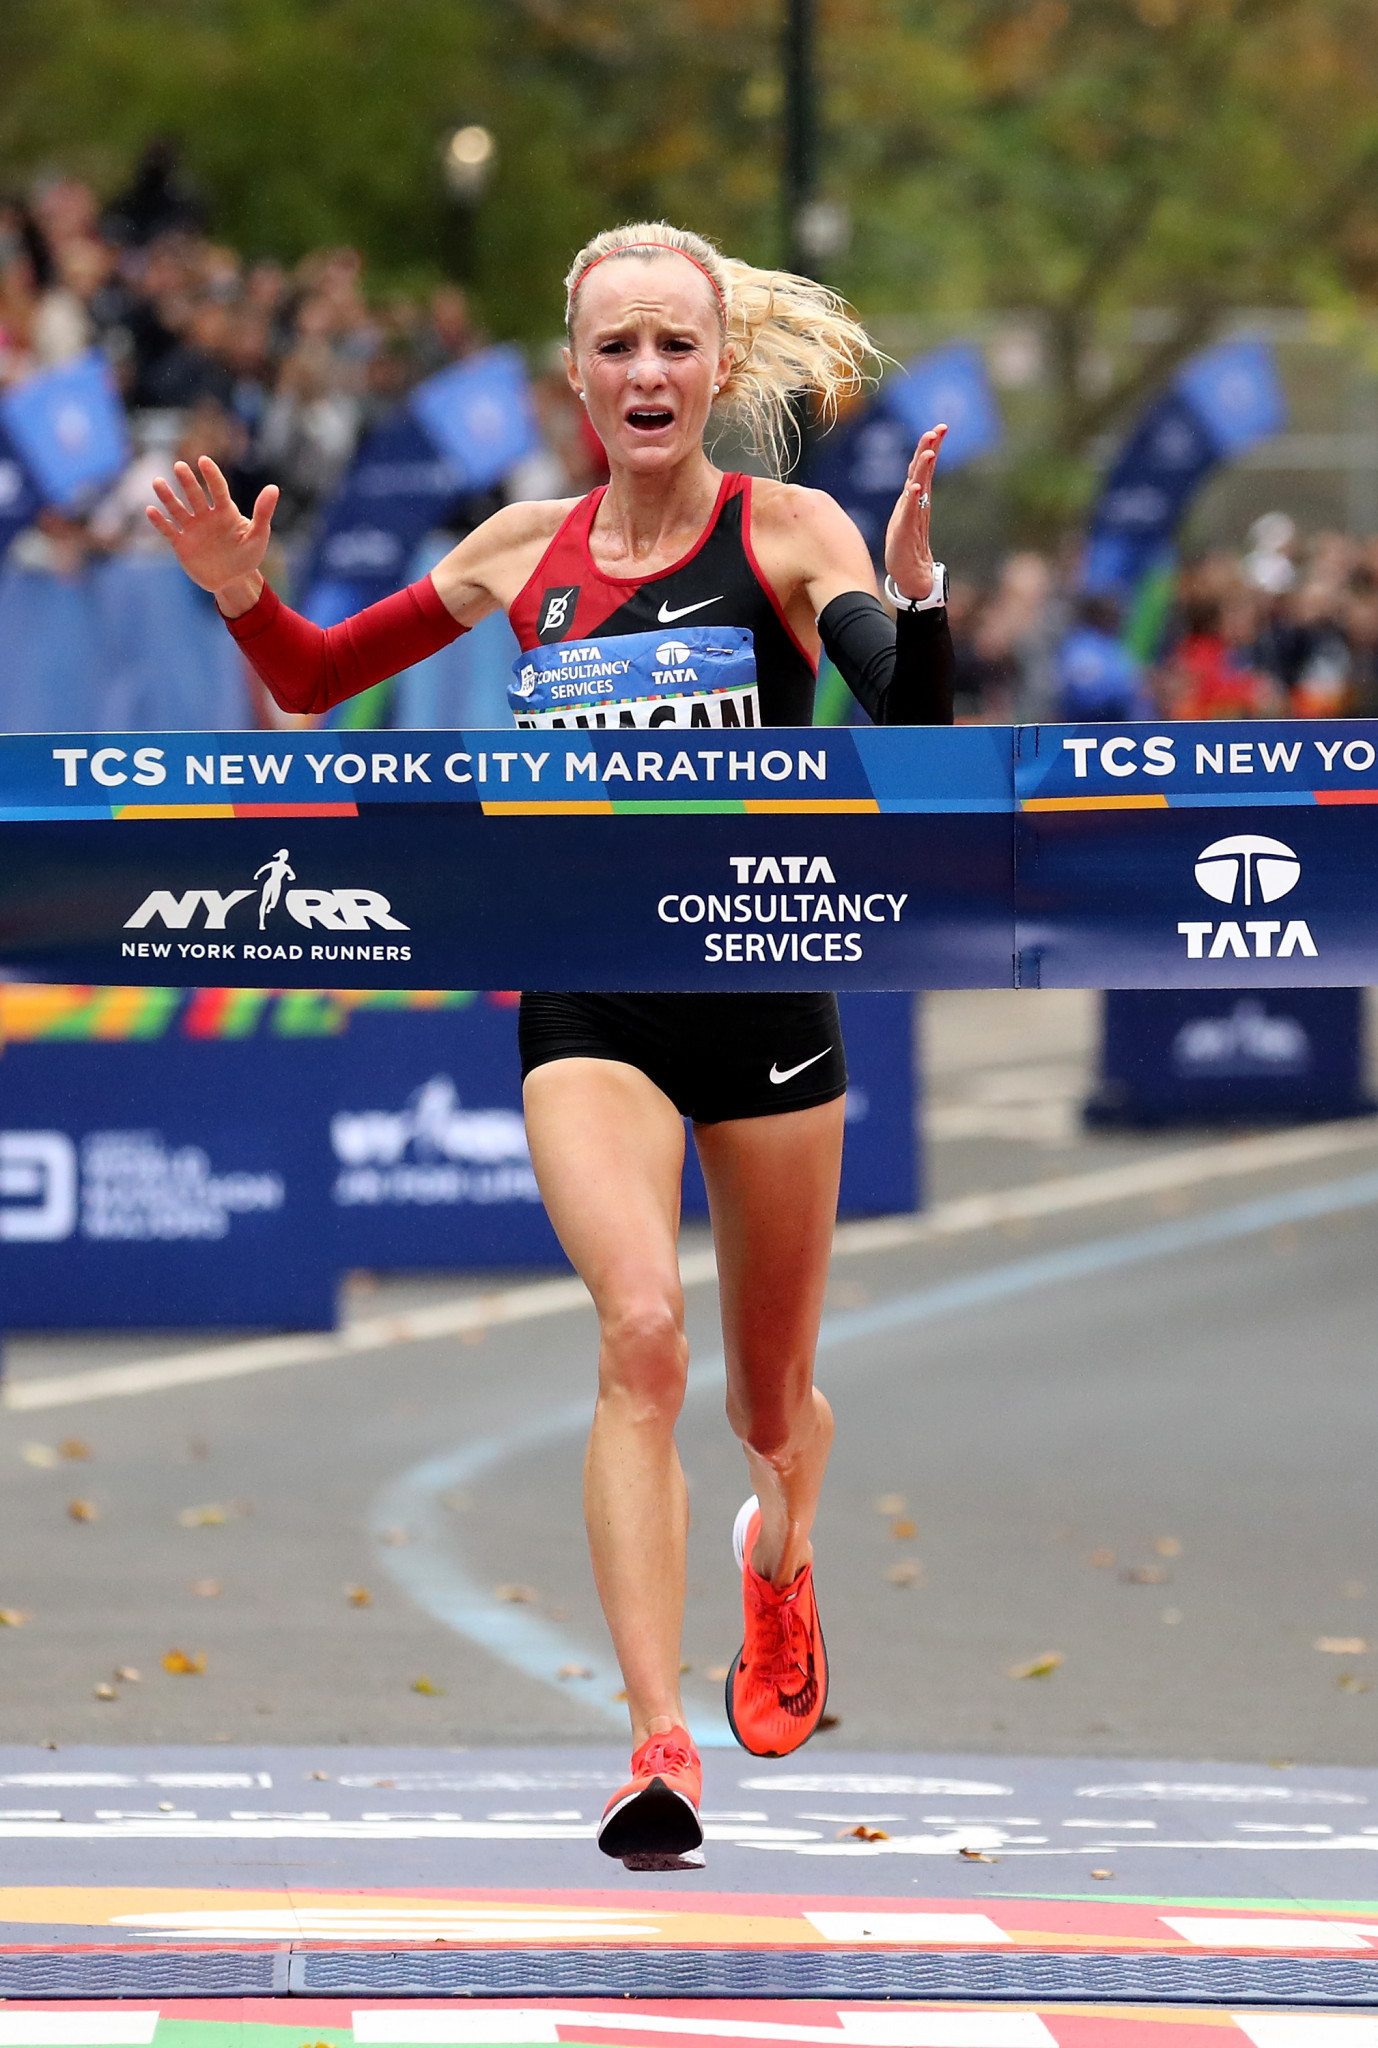 Kamworor and Flanagan prepare to defend New York City Marathon titles